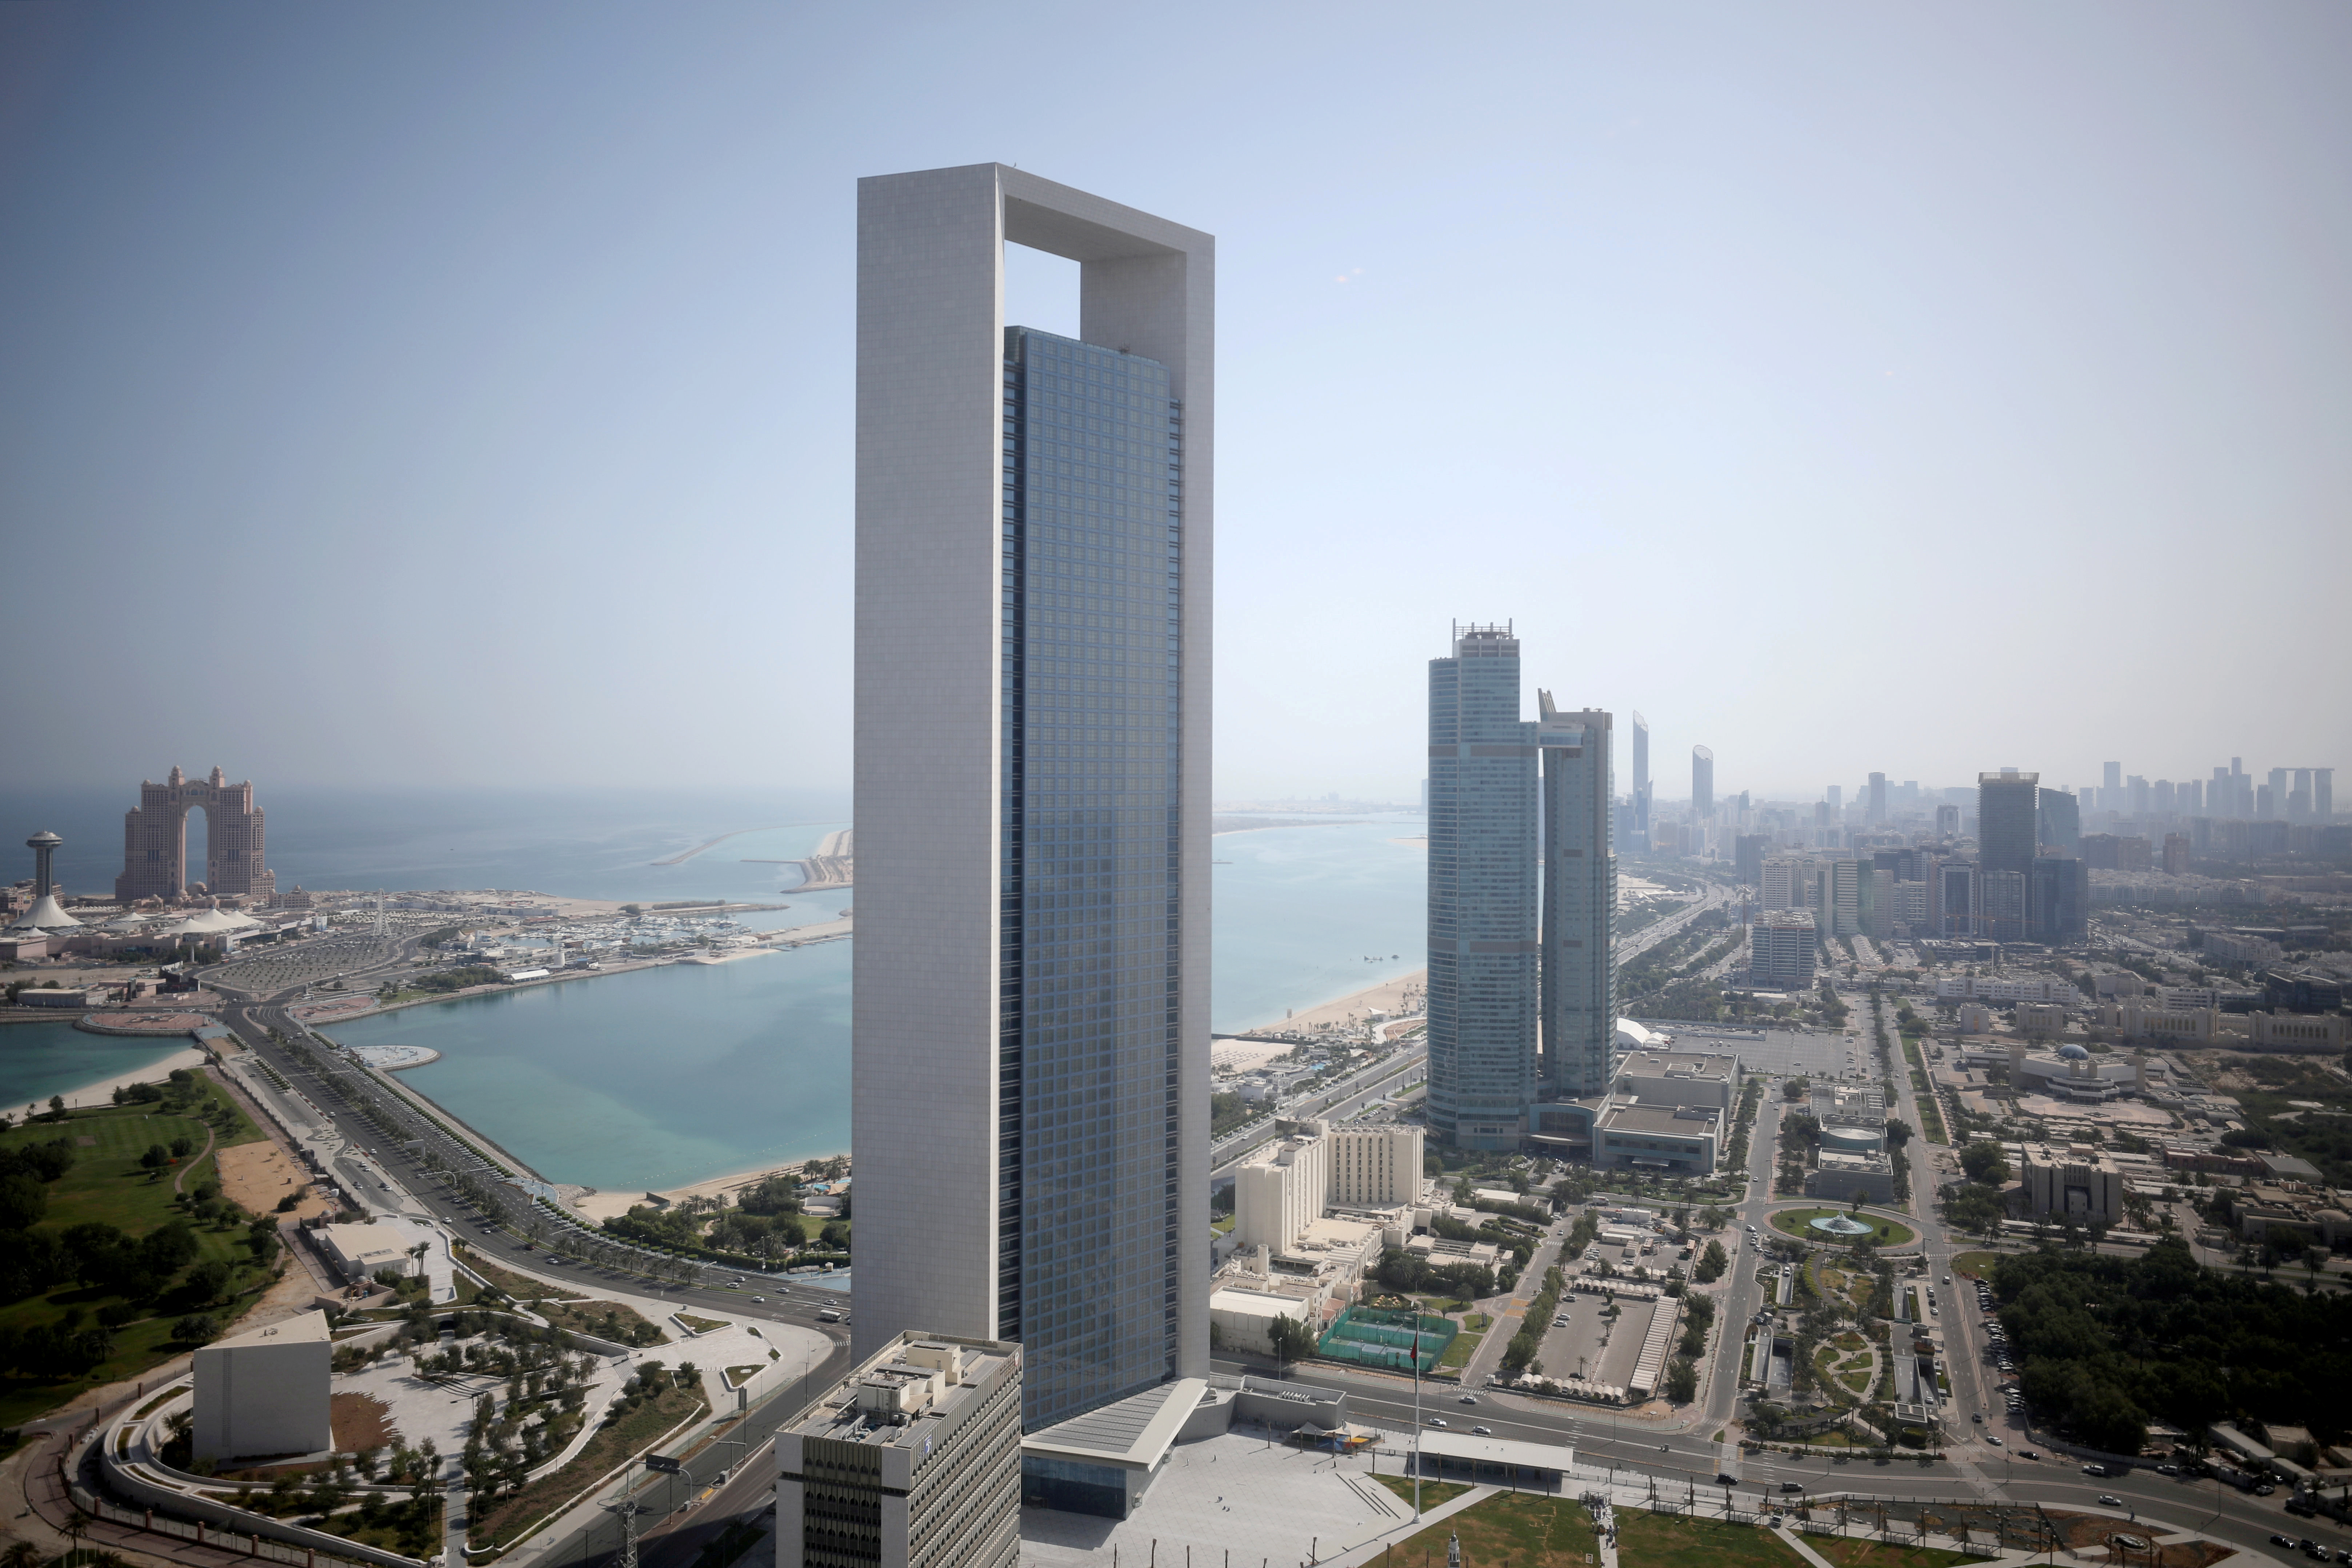 A general view of ADNOC headquarters in Abu Dhabi, United Arab Emirates May 29, 2019. REUTERS/Christopher Pike